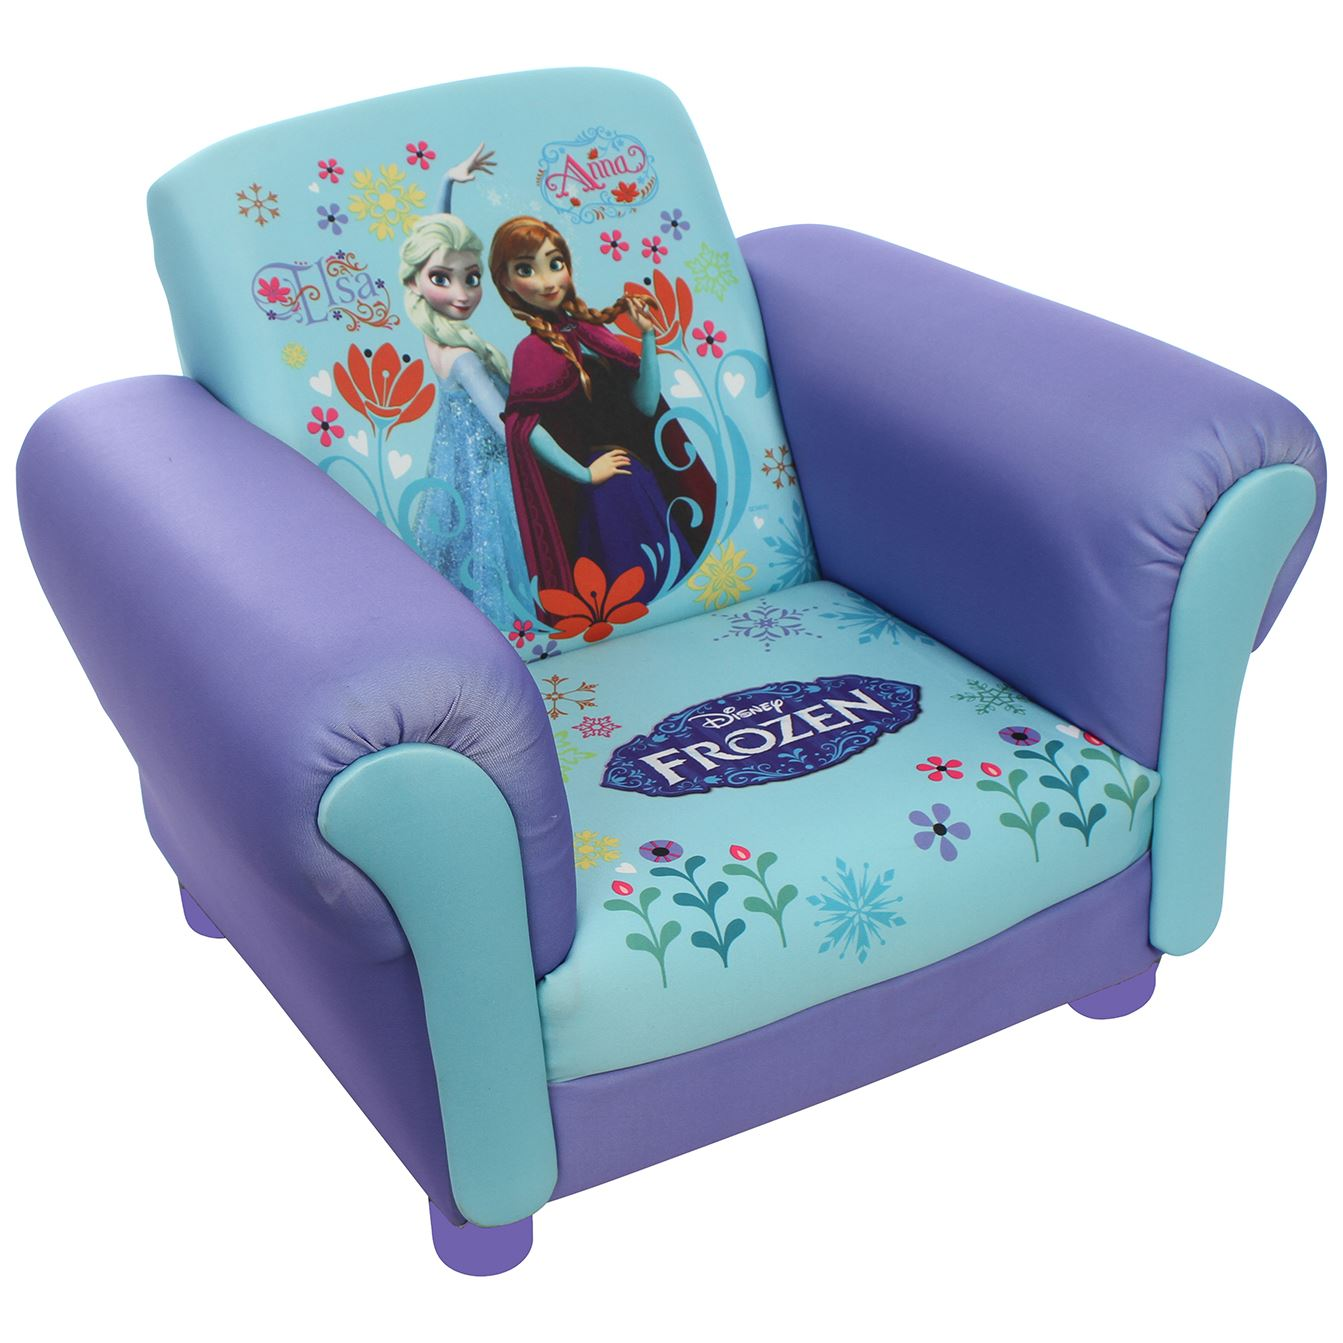 Toddler Sofa Chair Children 39s Princess Frozen Elsa And Anna Upholstered Chair